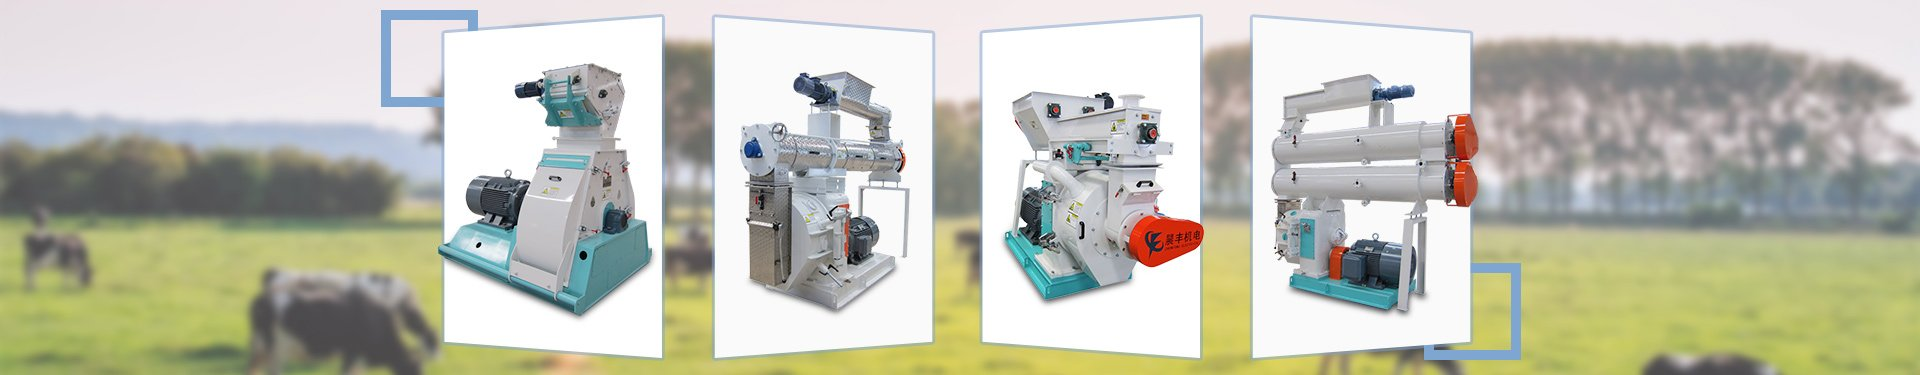 Pellet Mill,Pellet Machine,Feed Machine,Biomass Machine,Chilli Machine